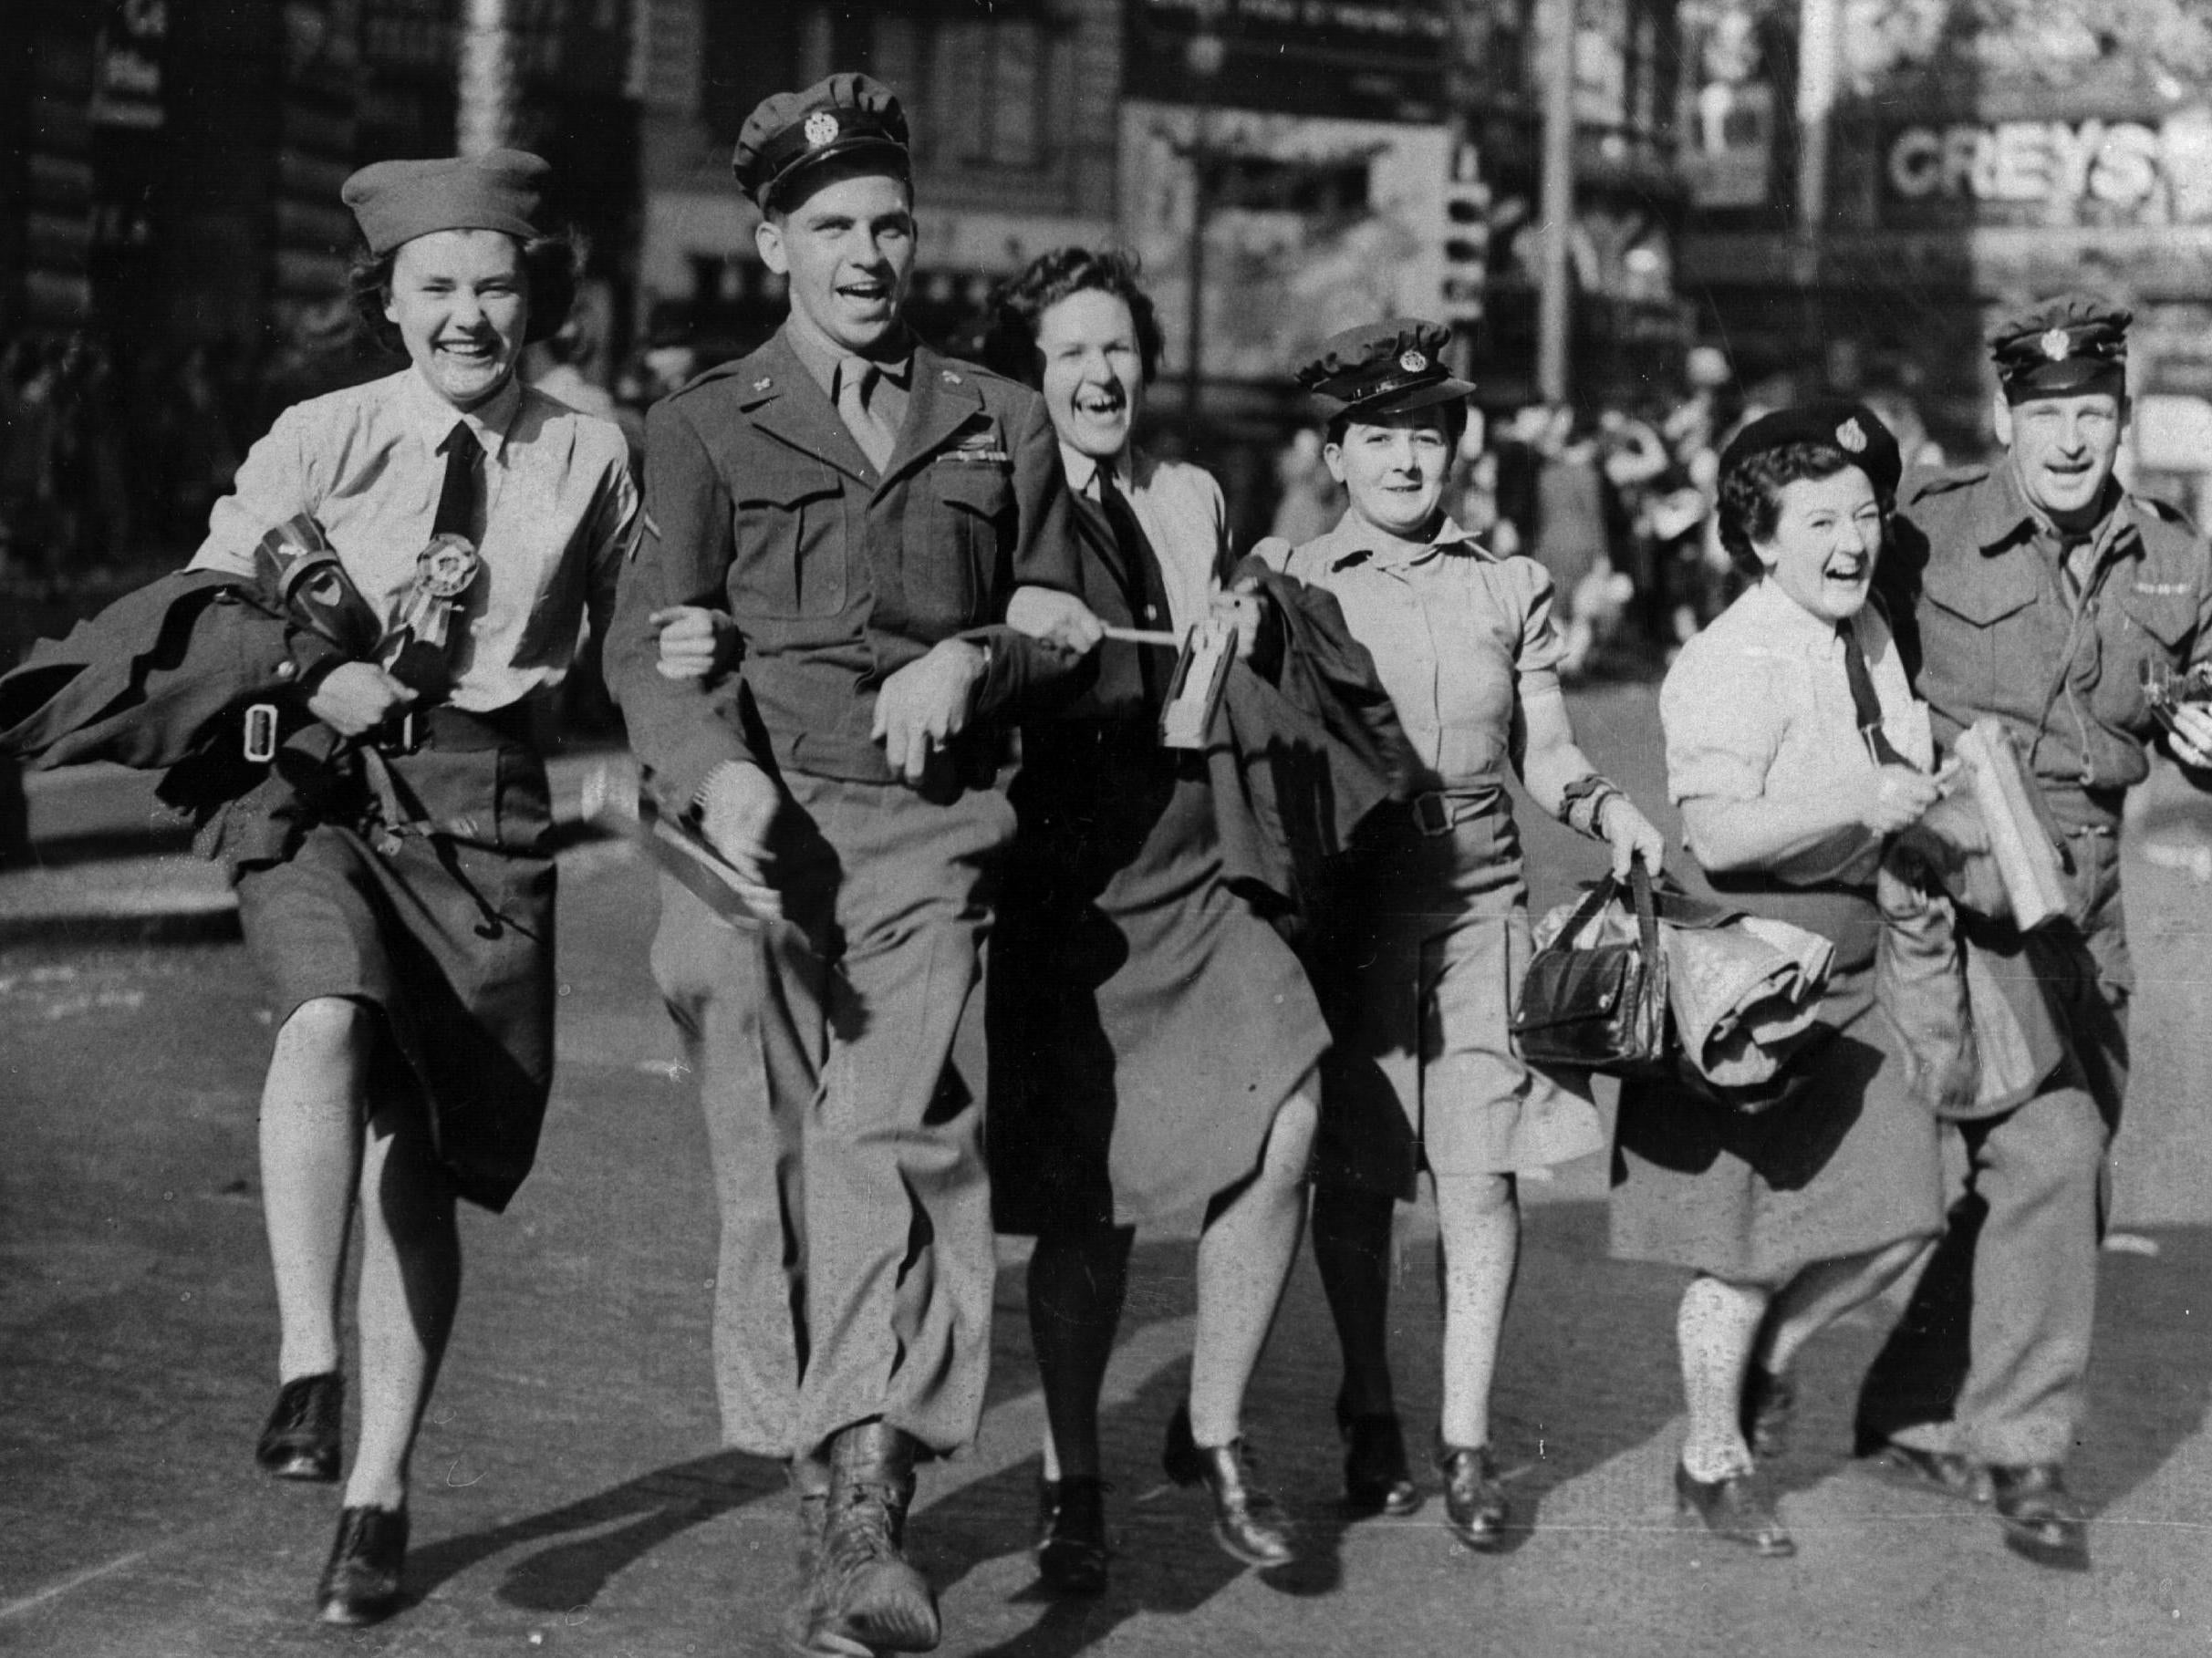 VJ Day 2020: What time is two-minute silence taking place today?